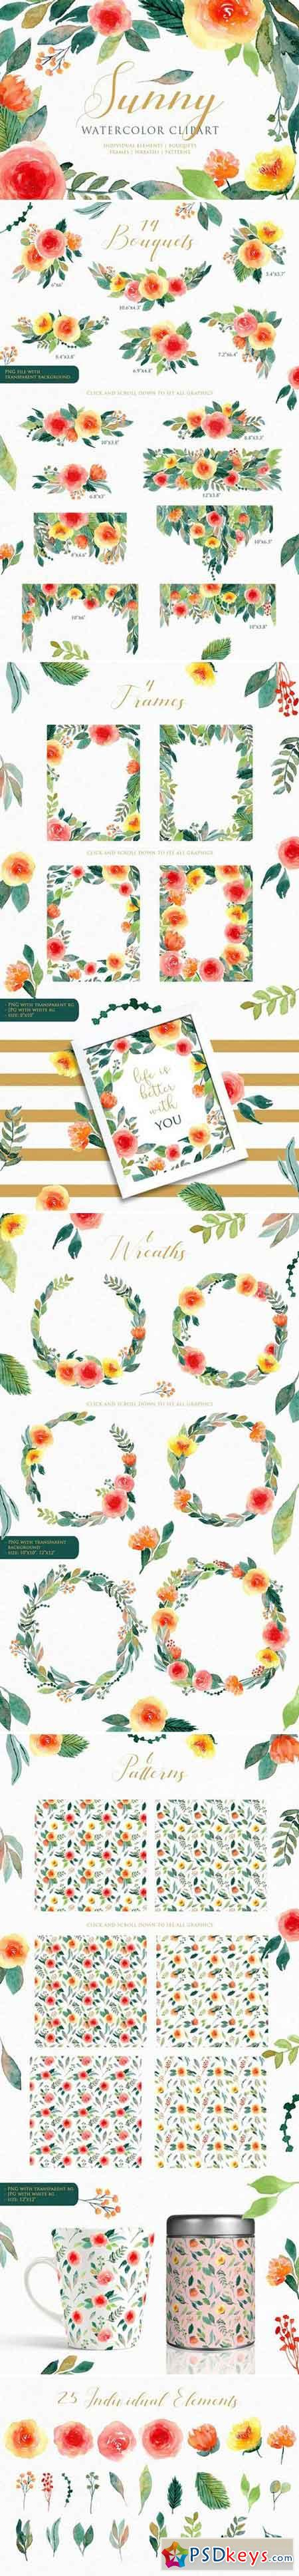 Sunny - Watercolor Floral Clipart 1926725